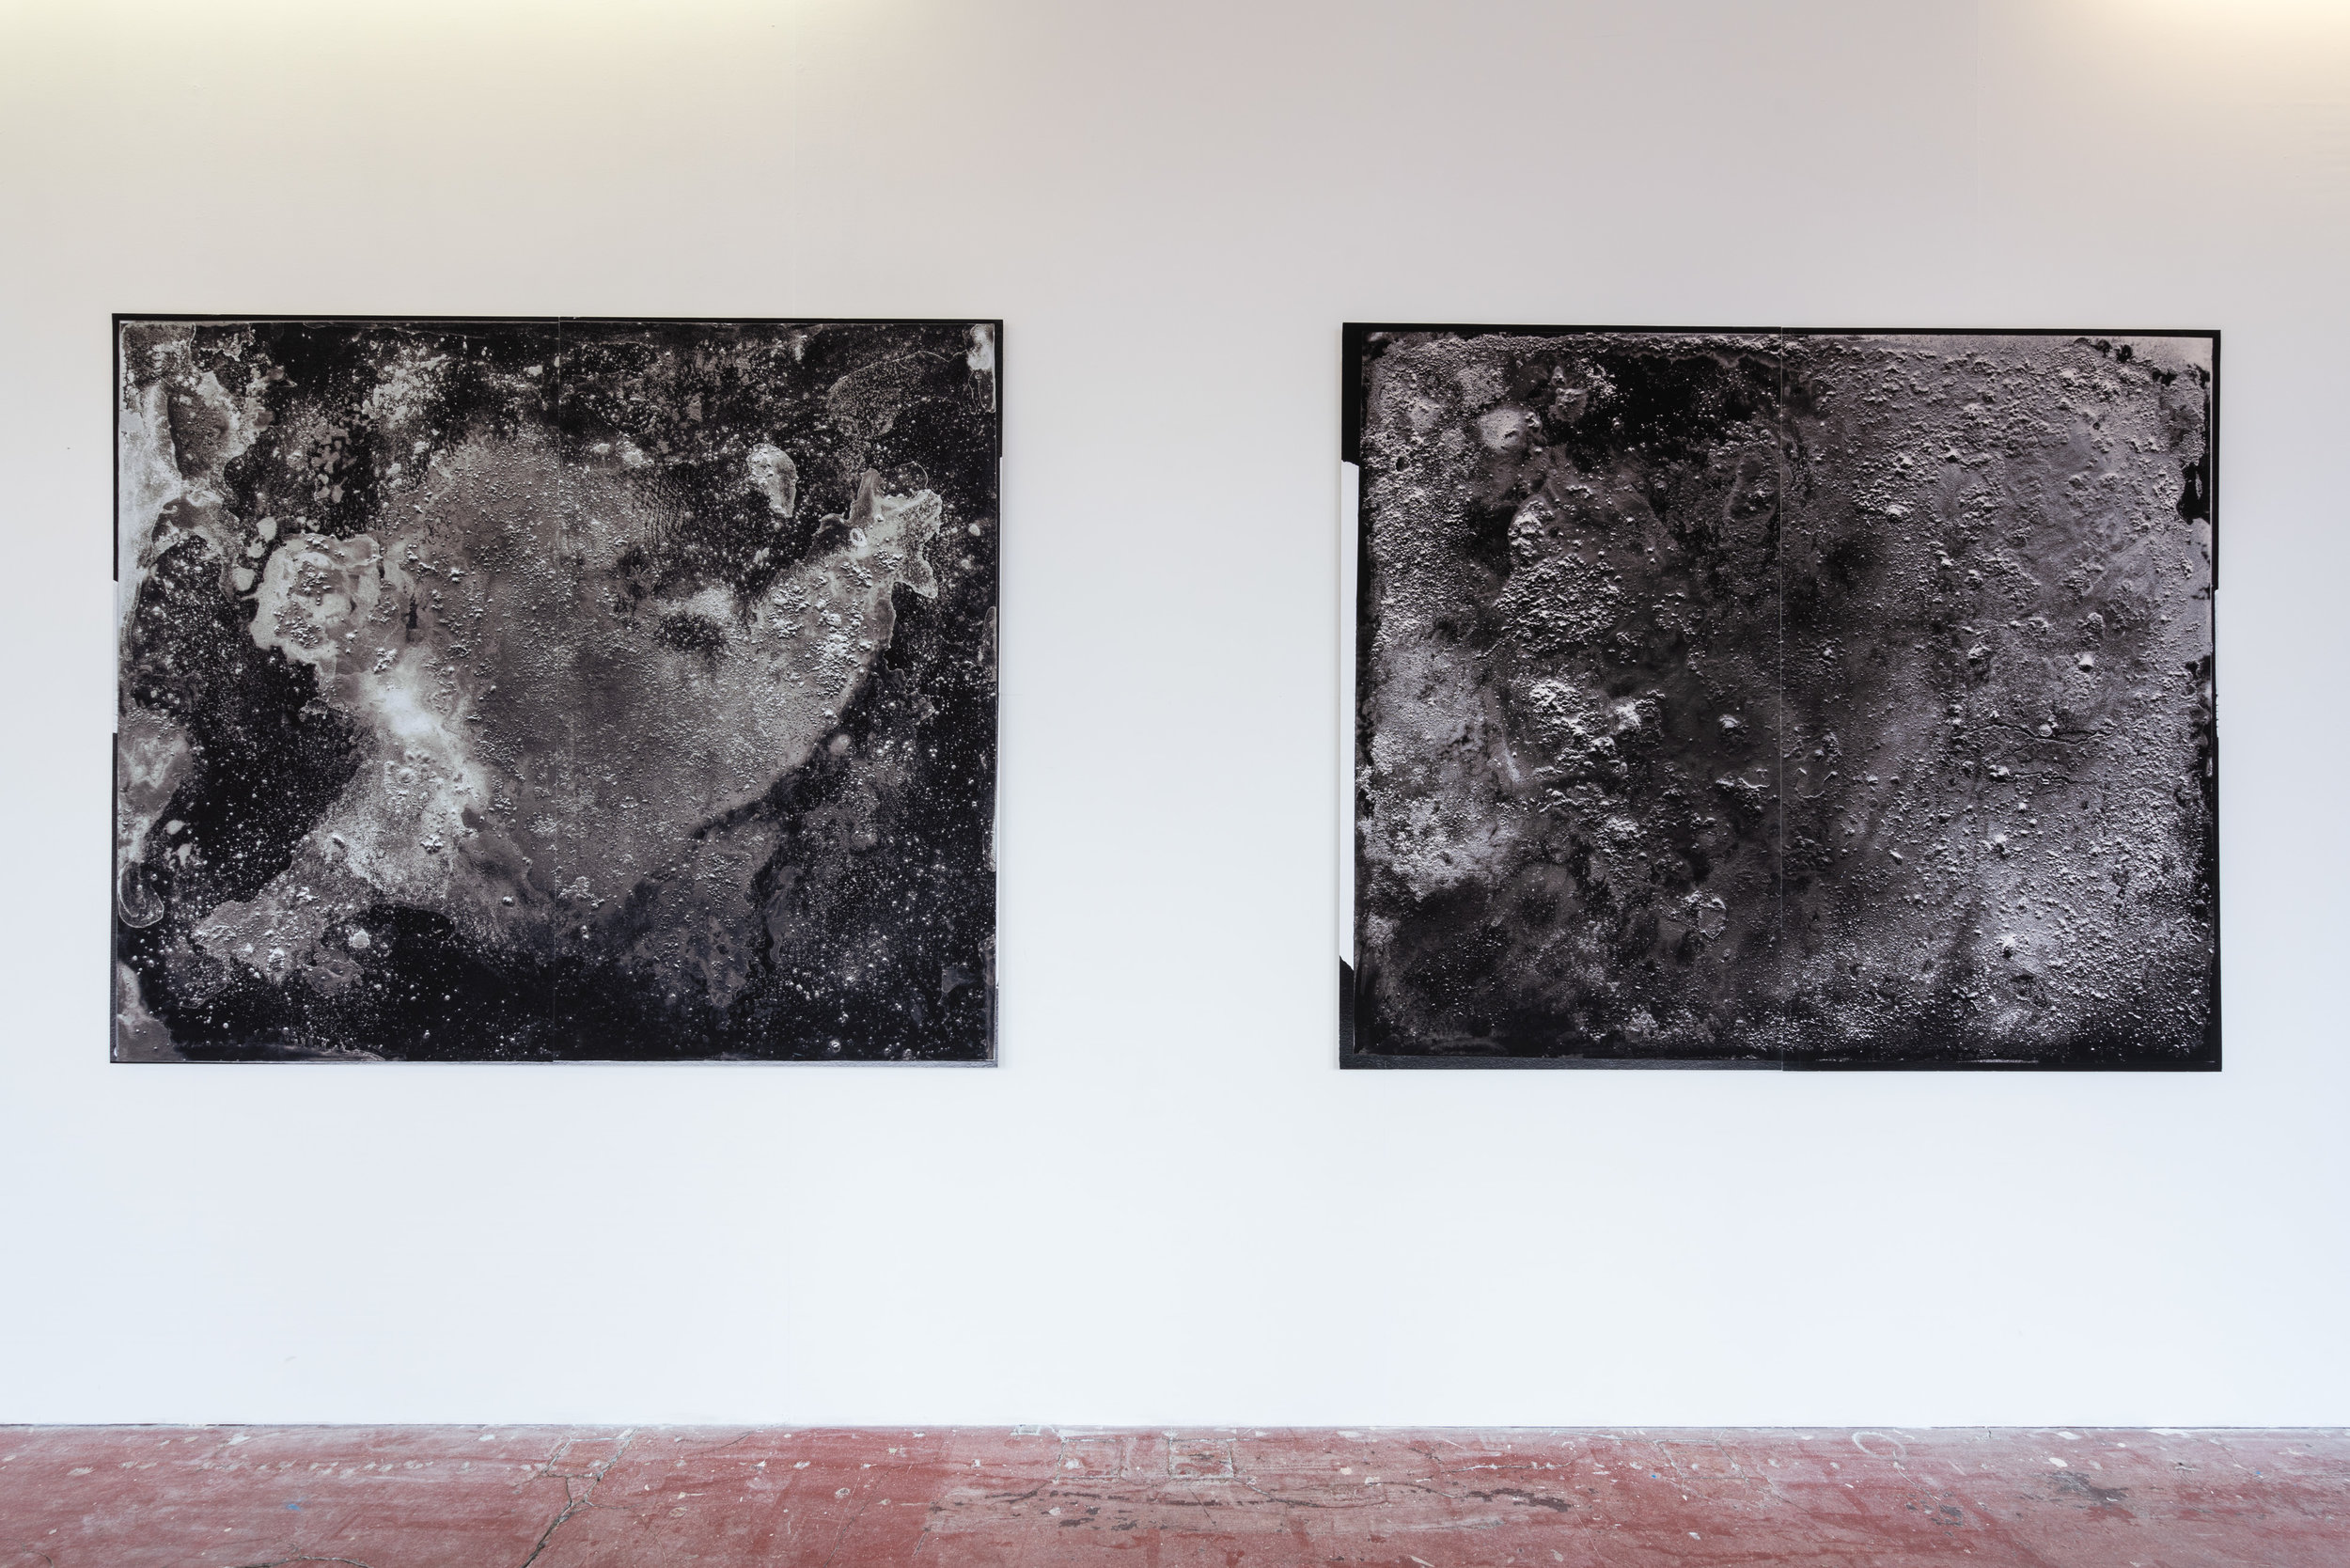 S/2016 B 6 and S/2016 B 8, installed at Backlit Gallery, Nottingham, 2019